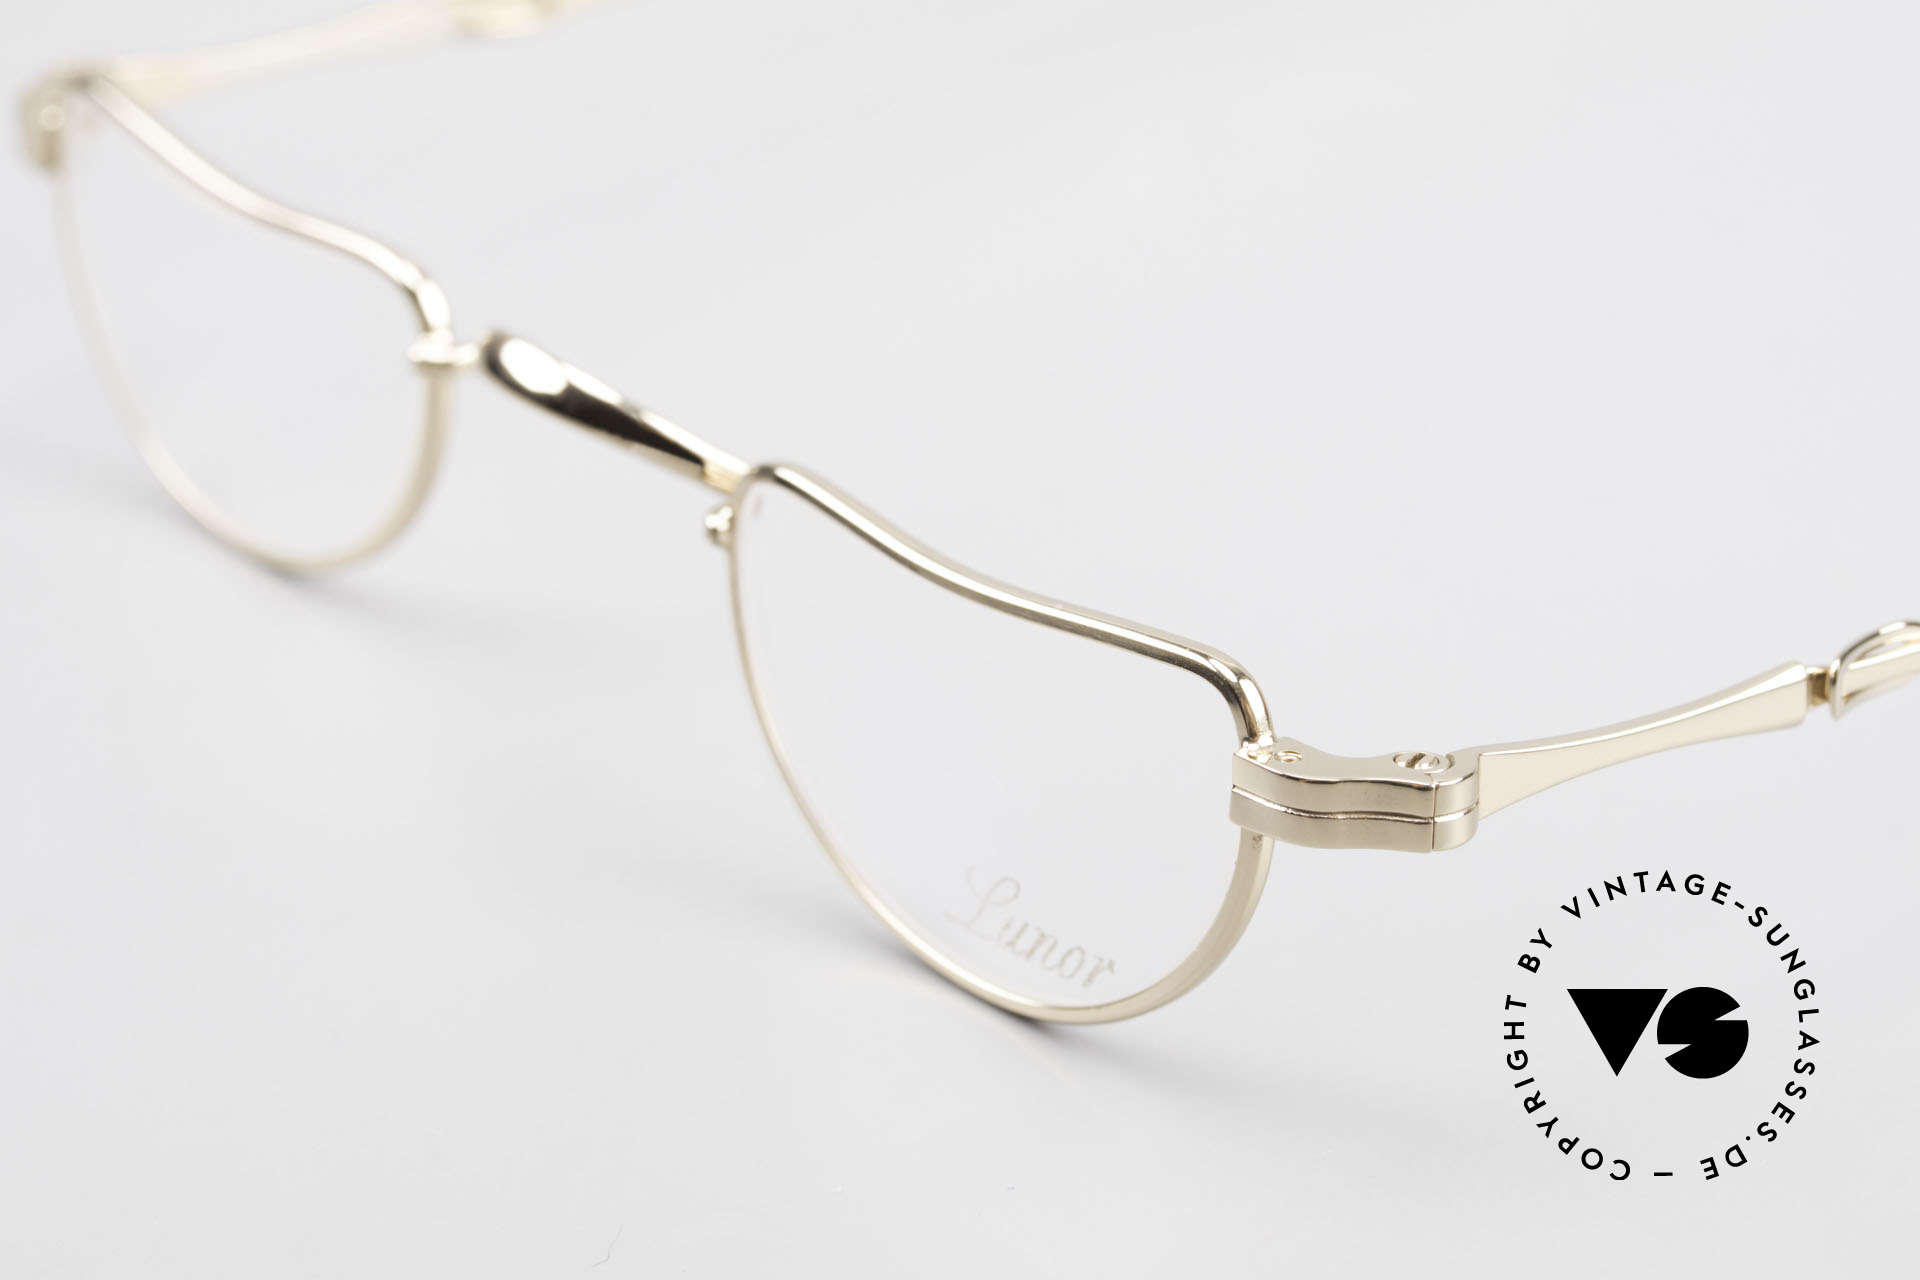 Lunor I 07 Telescopic Extendable Gold Plated Glasses, as well as for the brilliant telescopic / extendable arms, Made for Men and Women